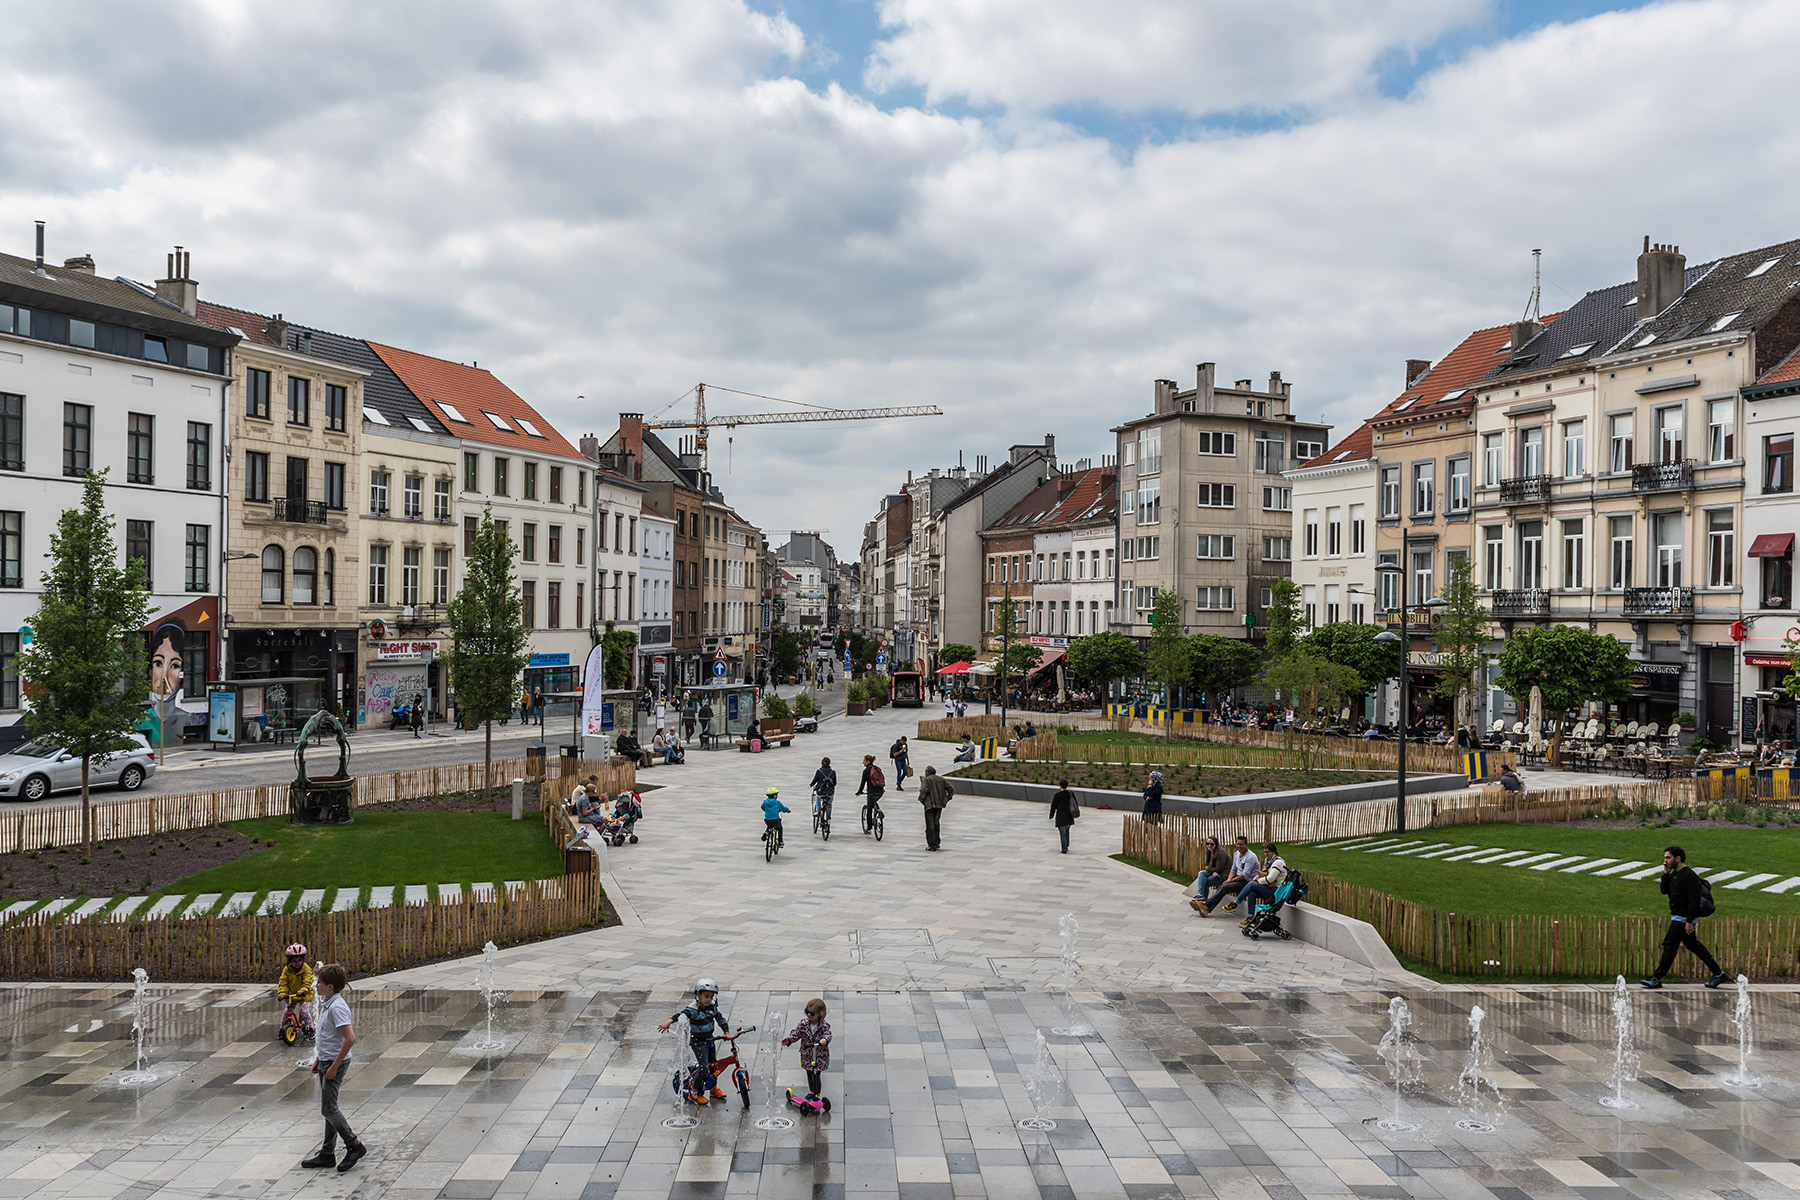 Place Fernand Cocq in Ixelles